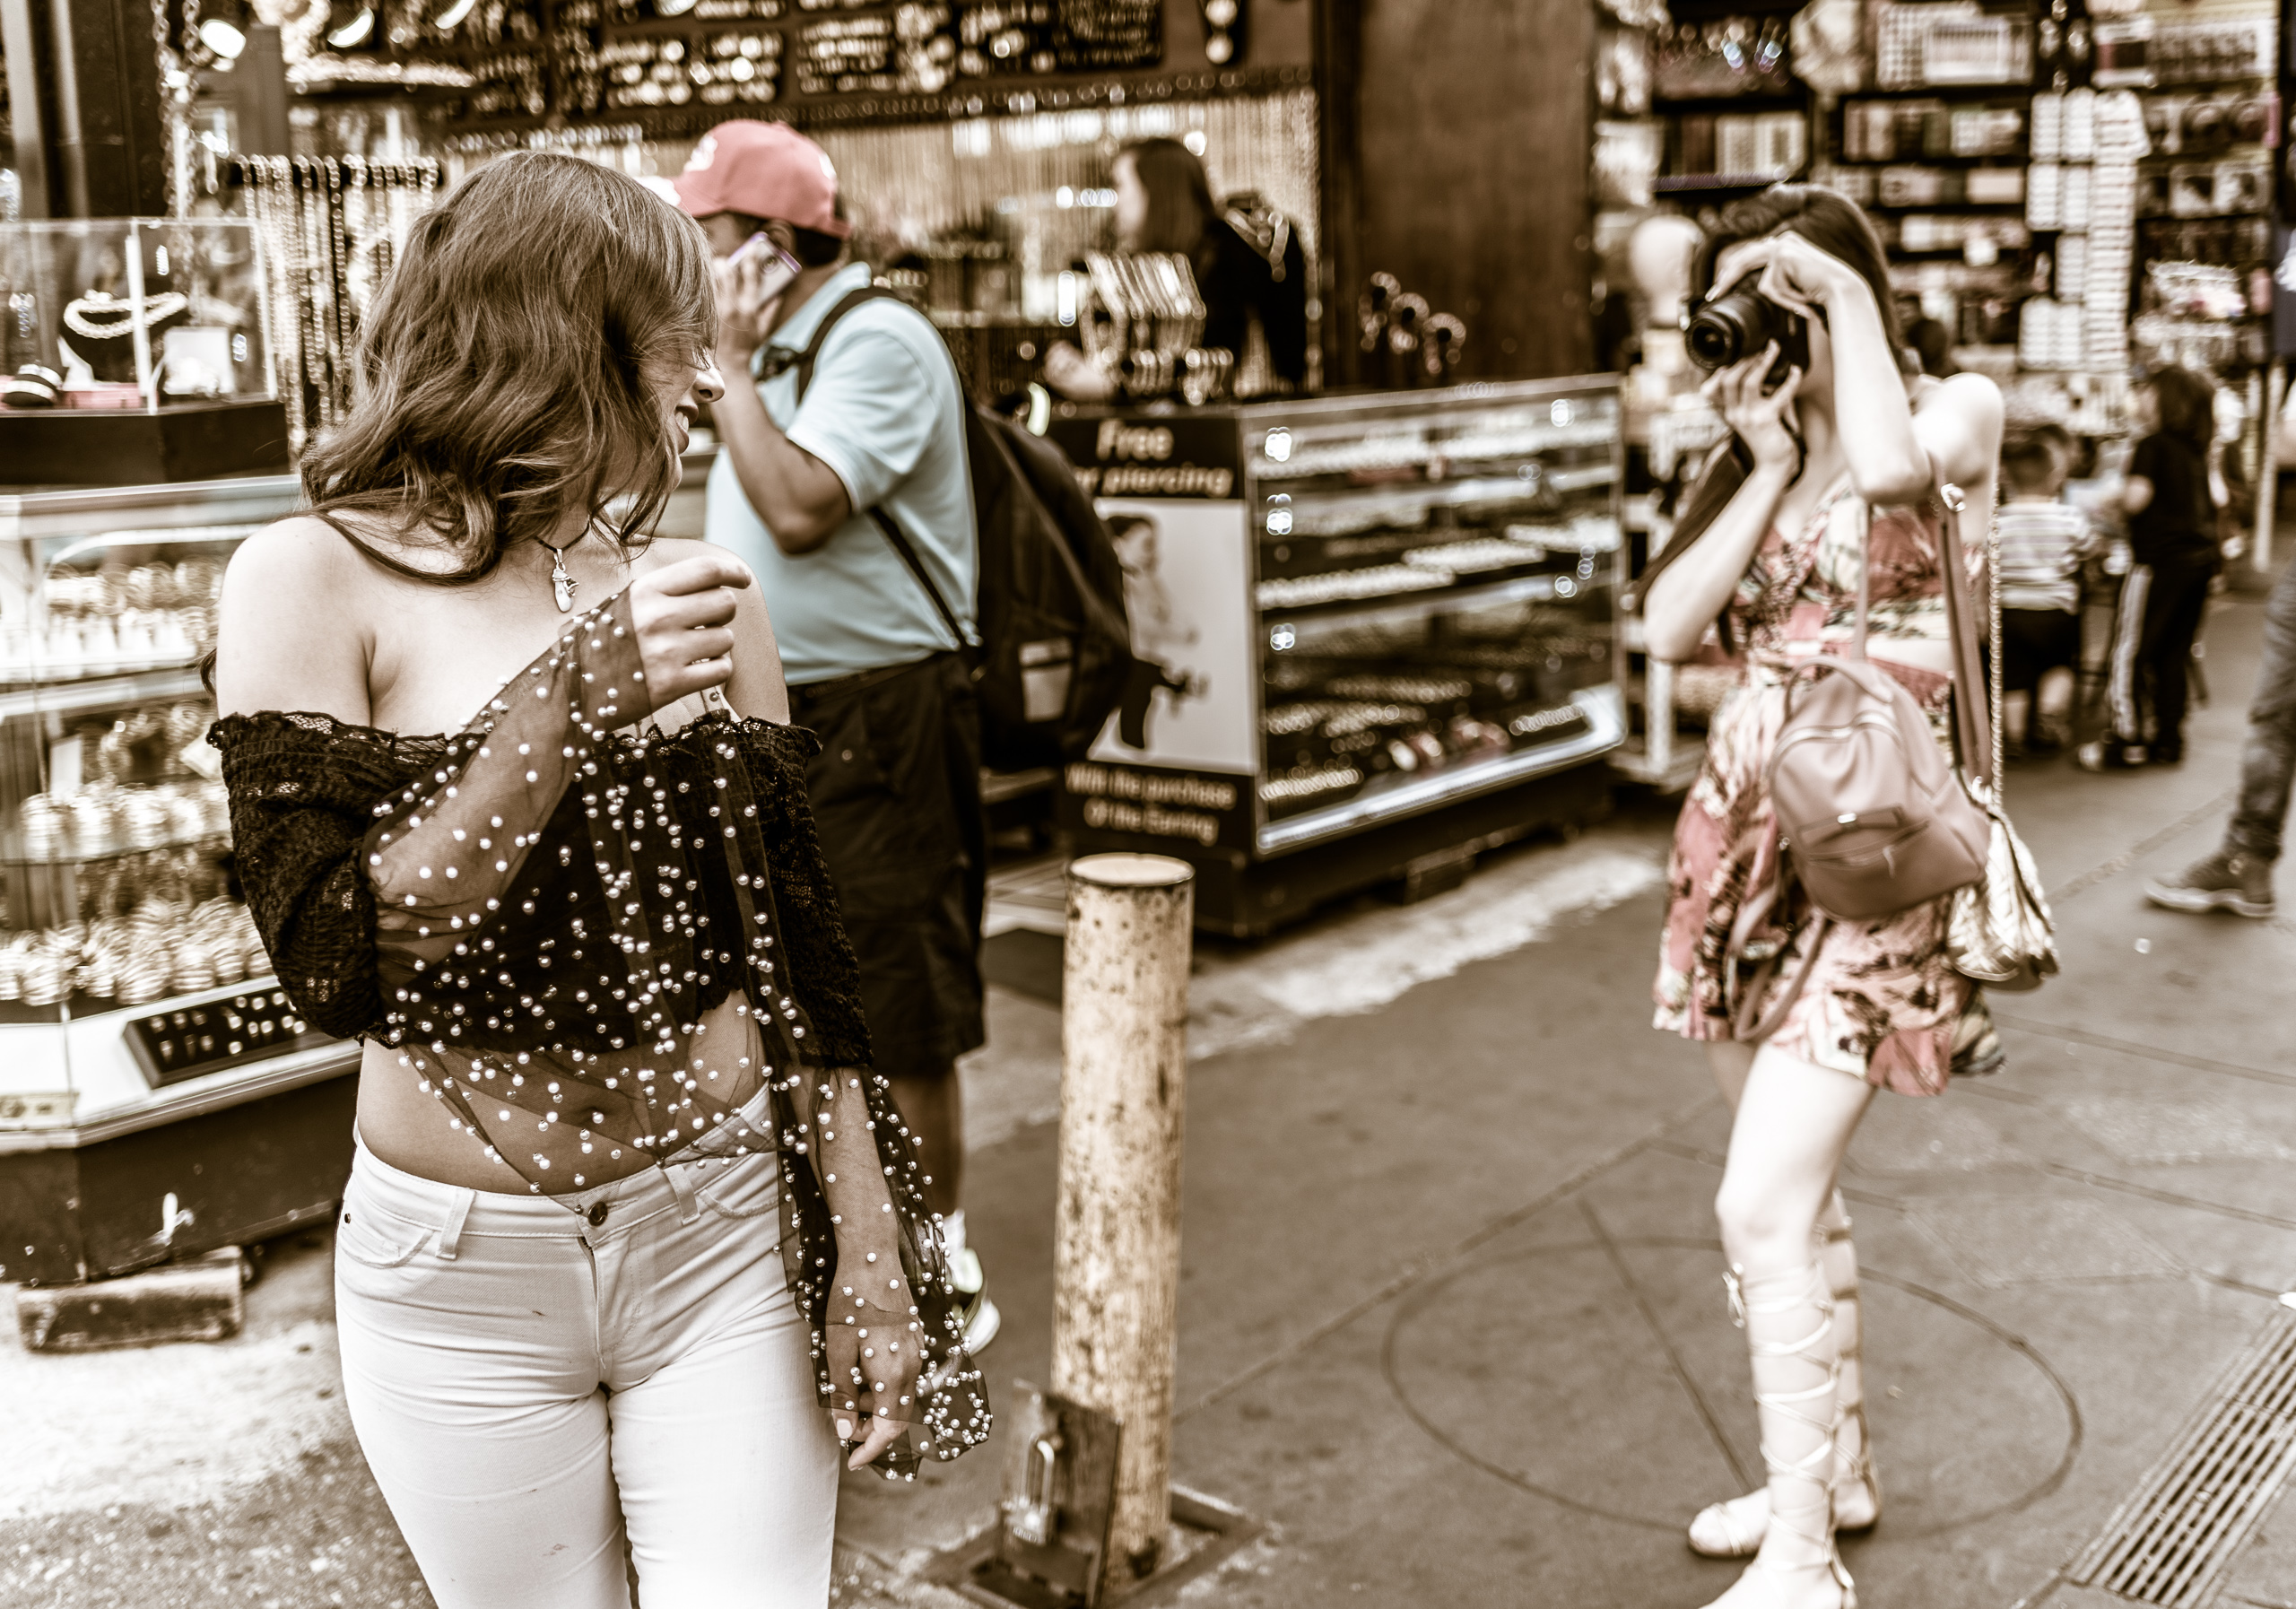 Two friends in Santee Alley. One turns to pose for the other who holds a camera.